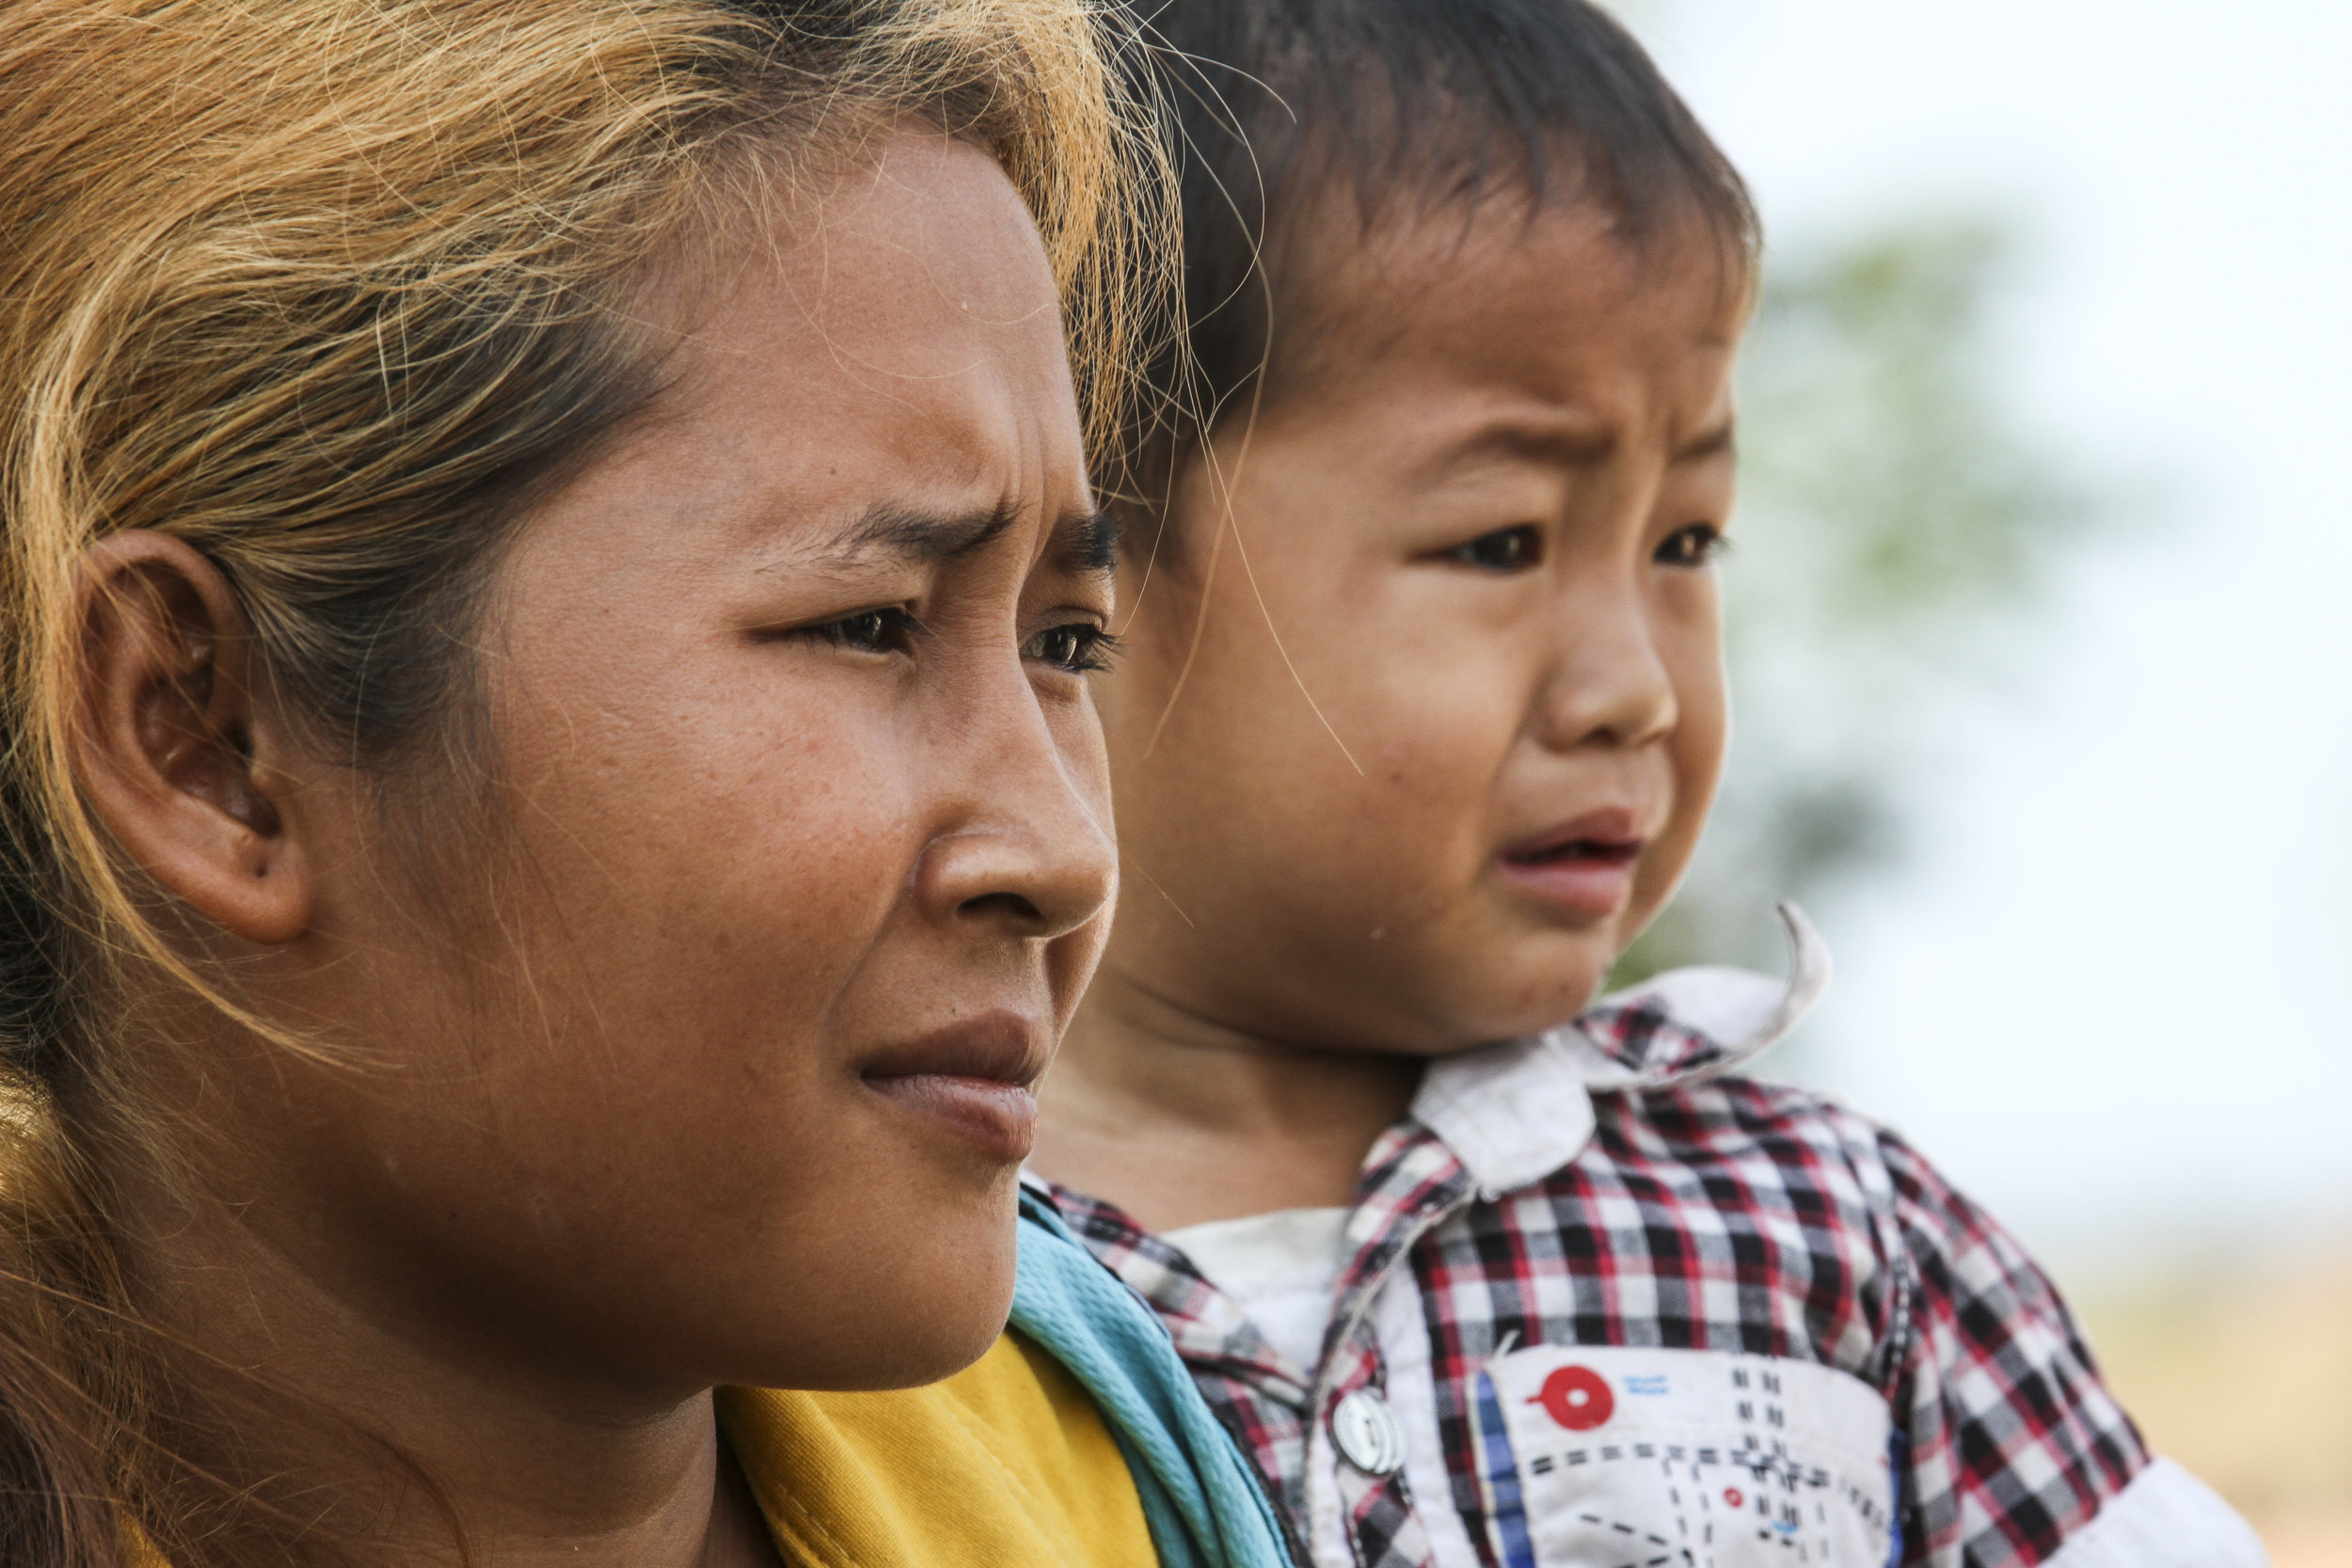 A WORTH member and child in Cambodia.